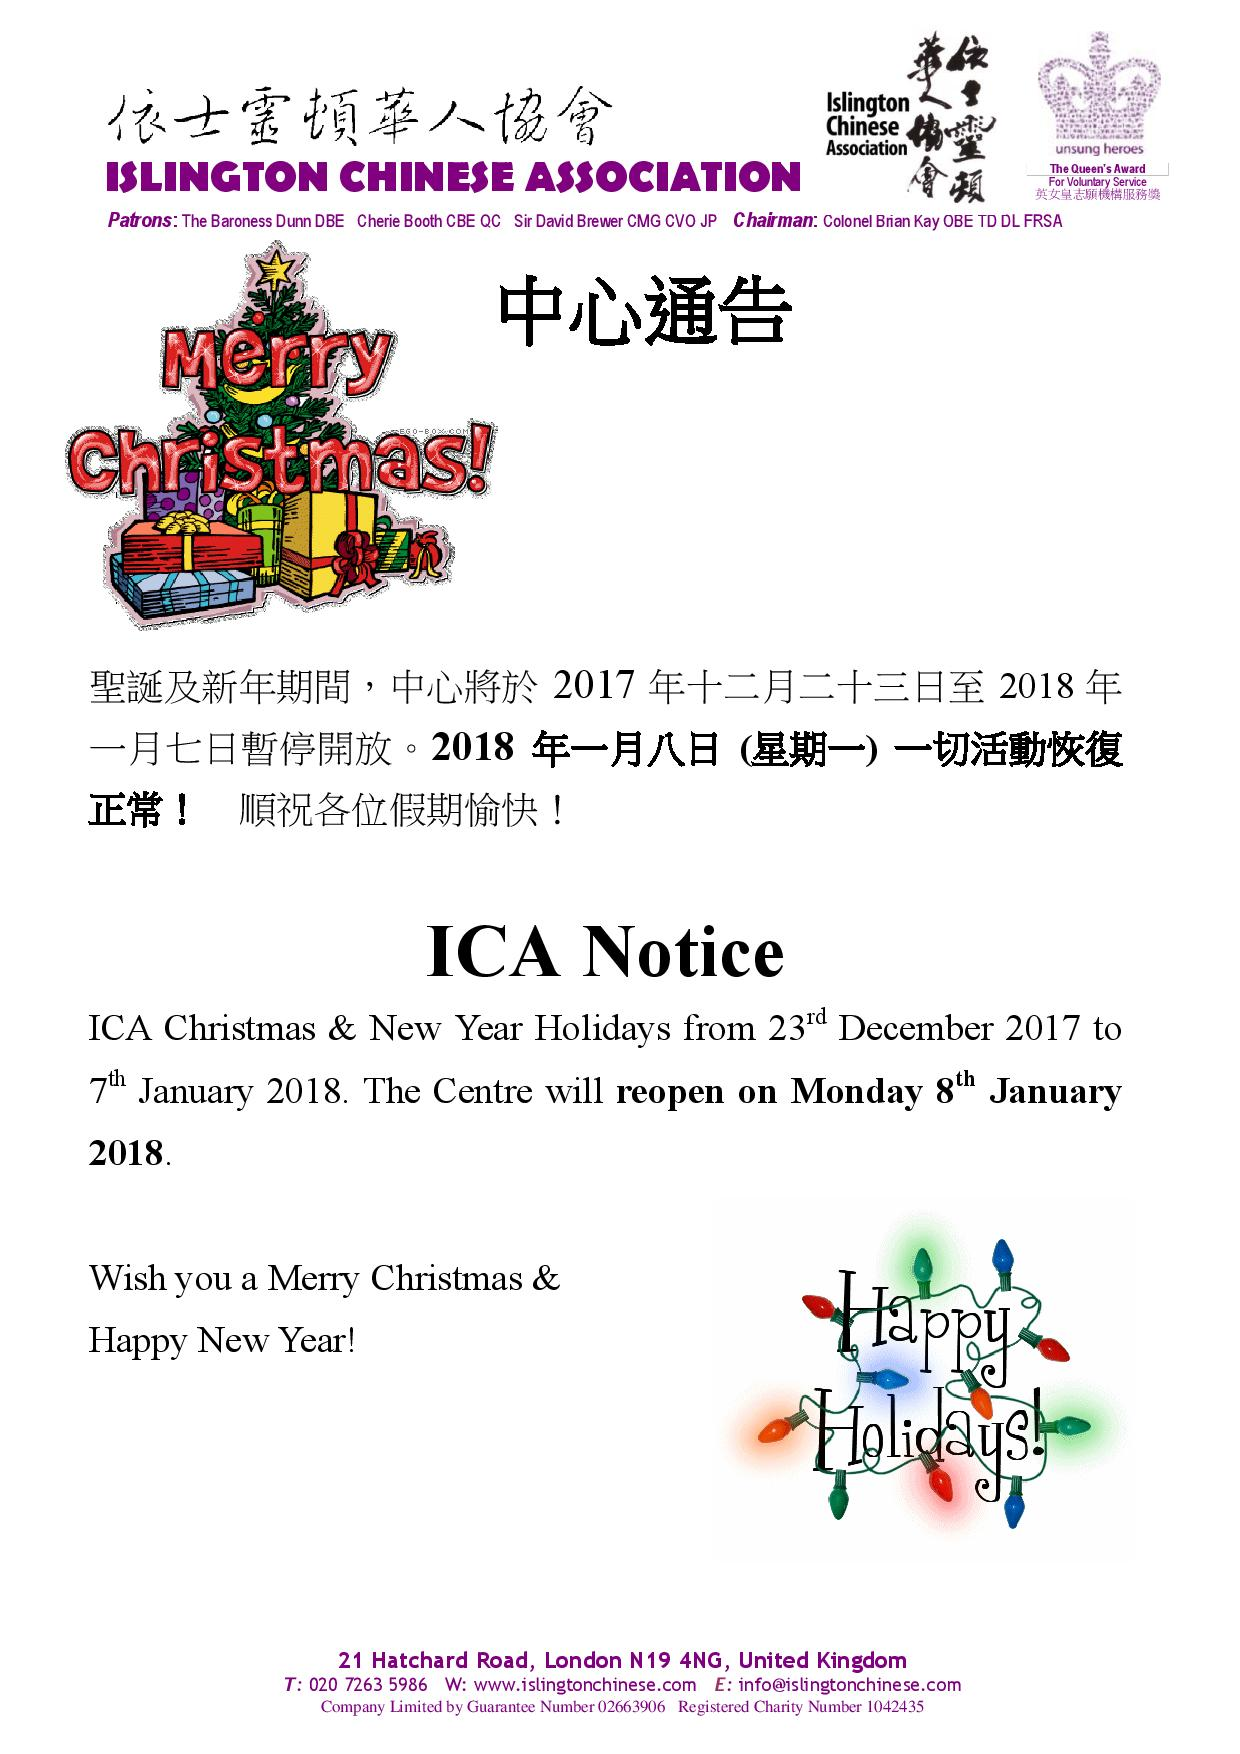 ICA Christmas & New Year Holiday Notice 2017-18